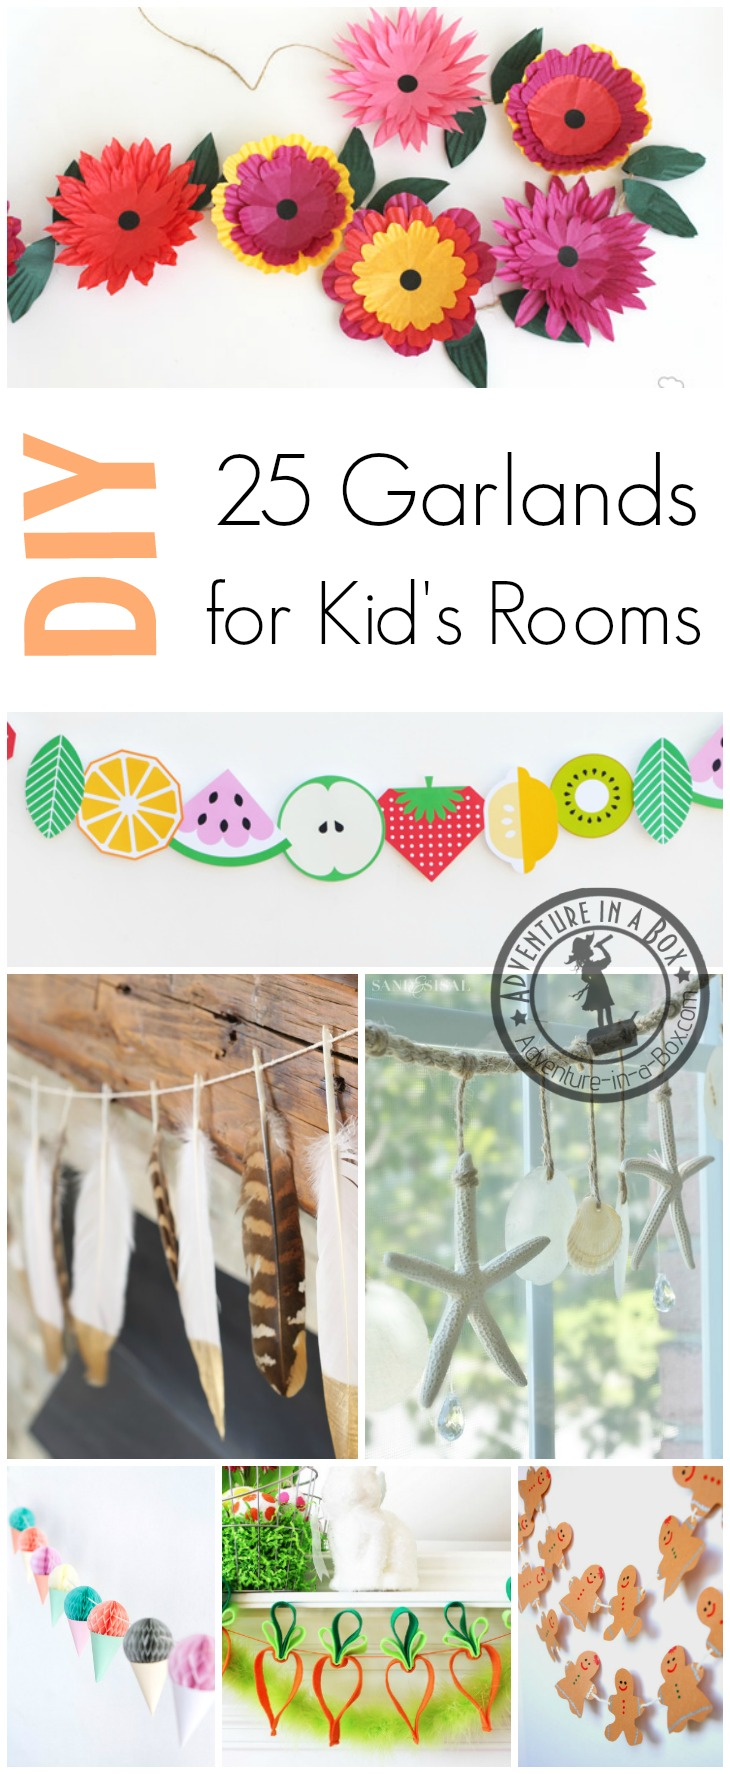 DIY Seasonal Garlands to Decorate Kid's Rooms: Beautiful handmade garlands to celebrate winter, spring, summer and autumn!